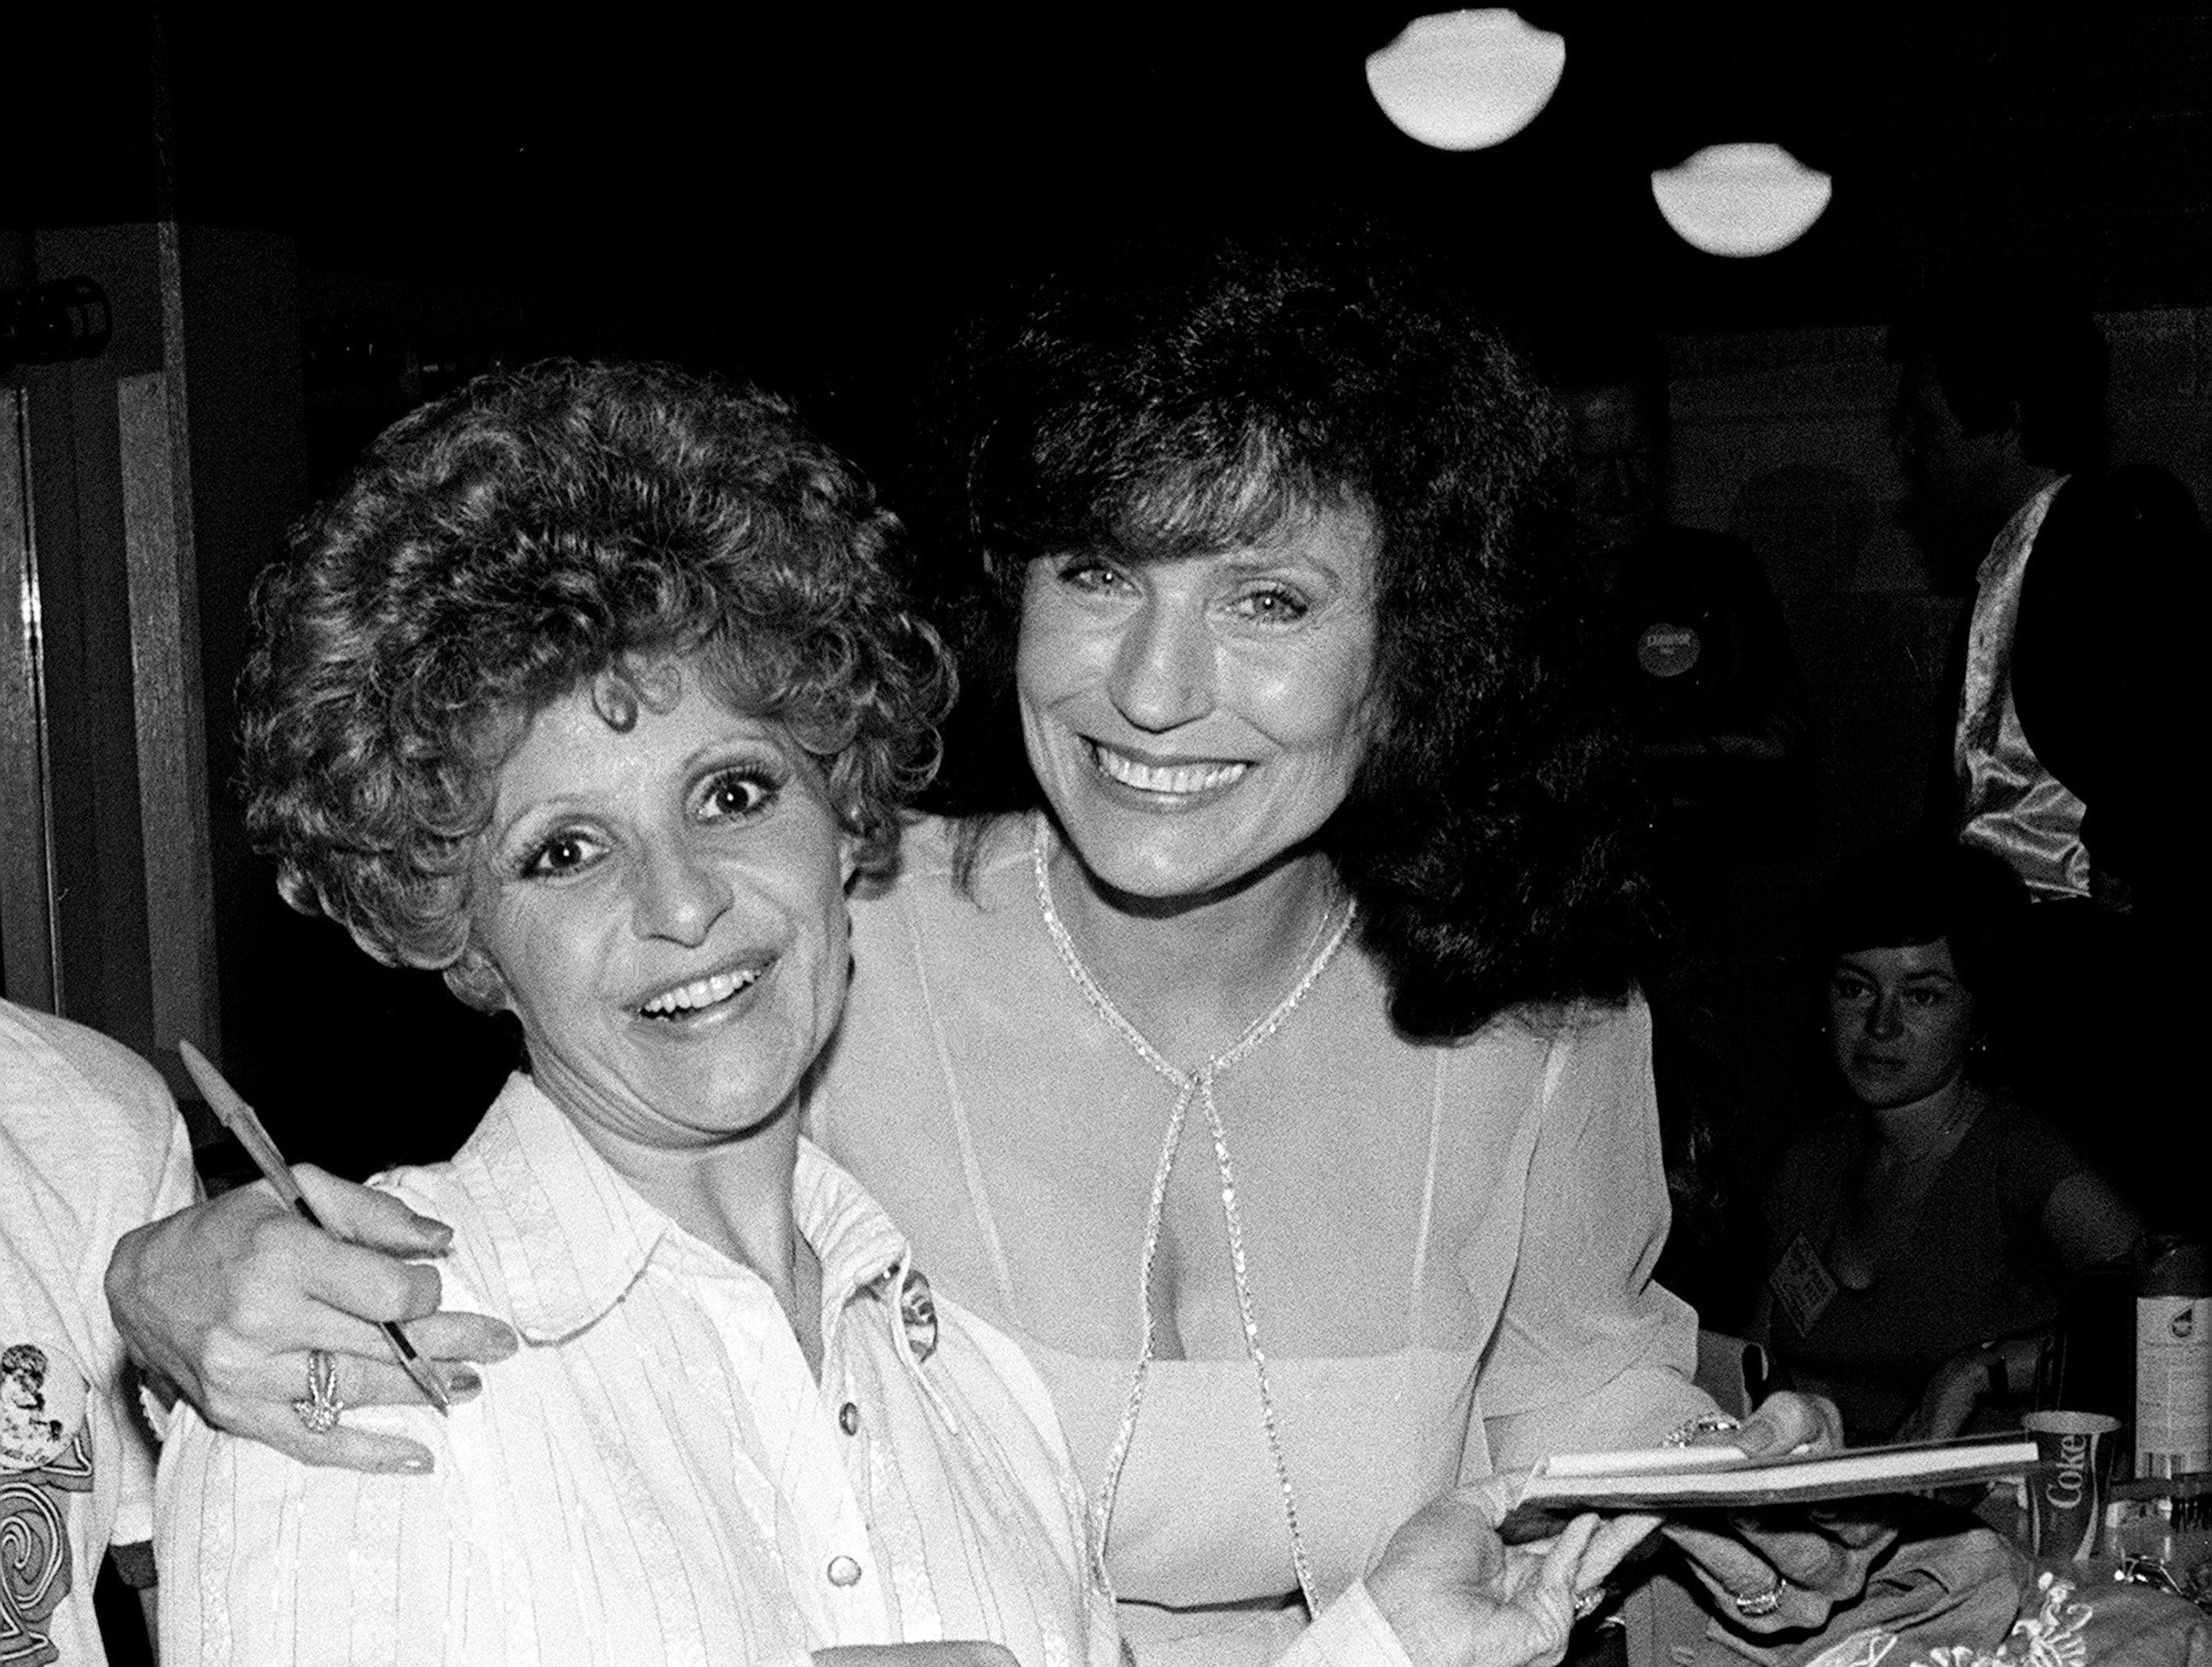 Brenda Lee, left, gets a hug and autograph from Loretta Lynn, who gets ready in the dressing room for the MCA Records show of the 10th annual International Country Music Fan Fair at the Municipal Auditorium in downtown Nashville June 11, 1981.